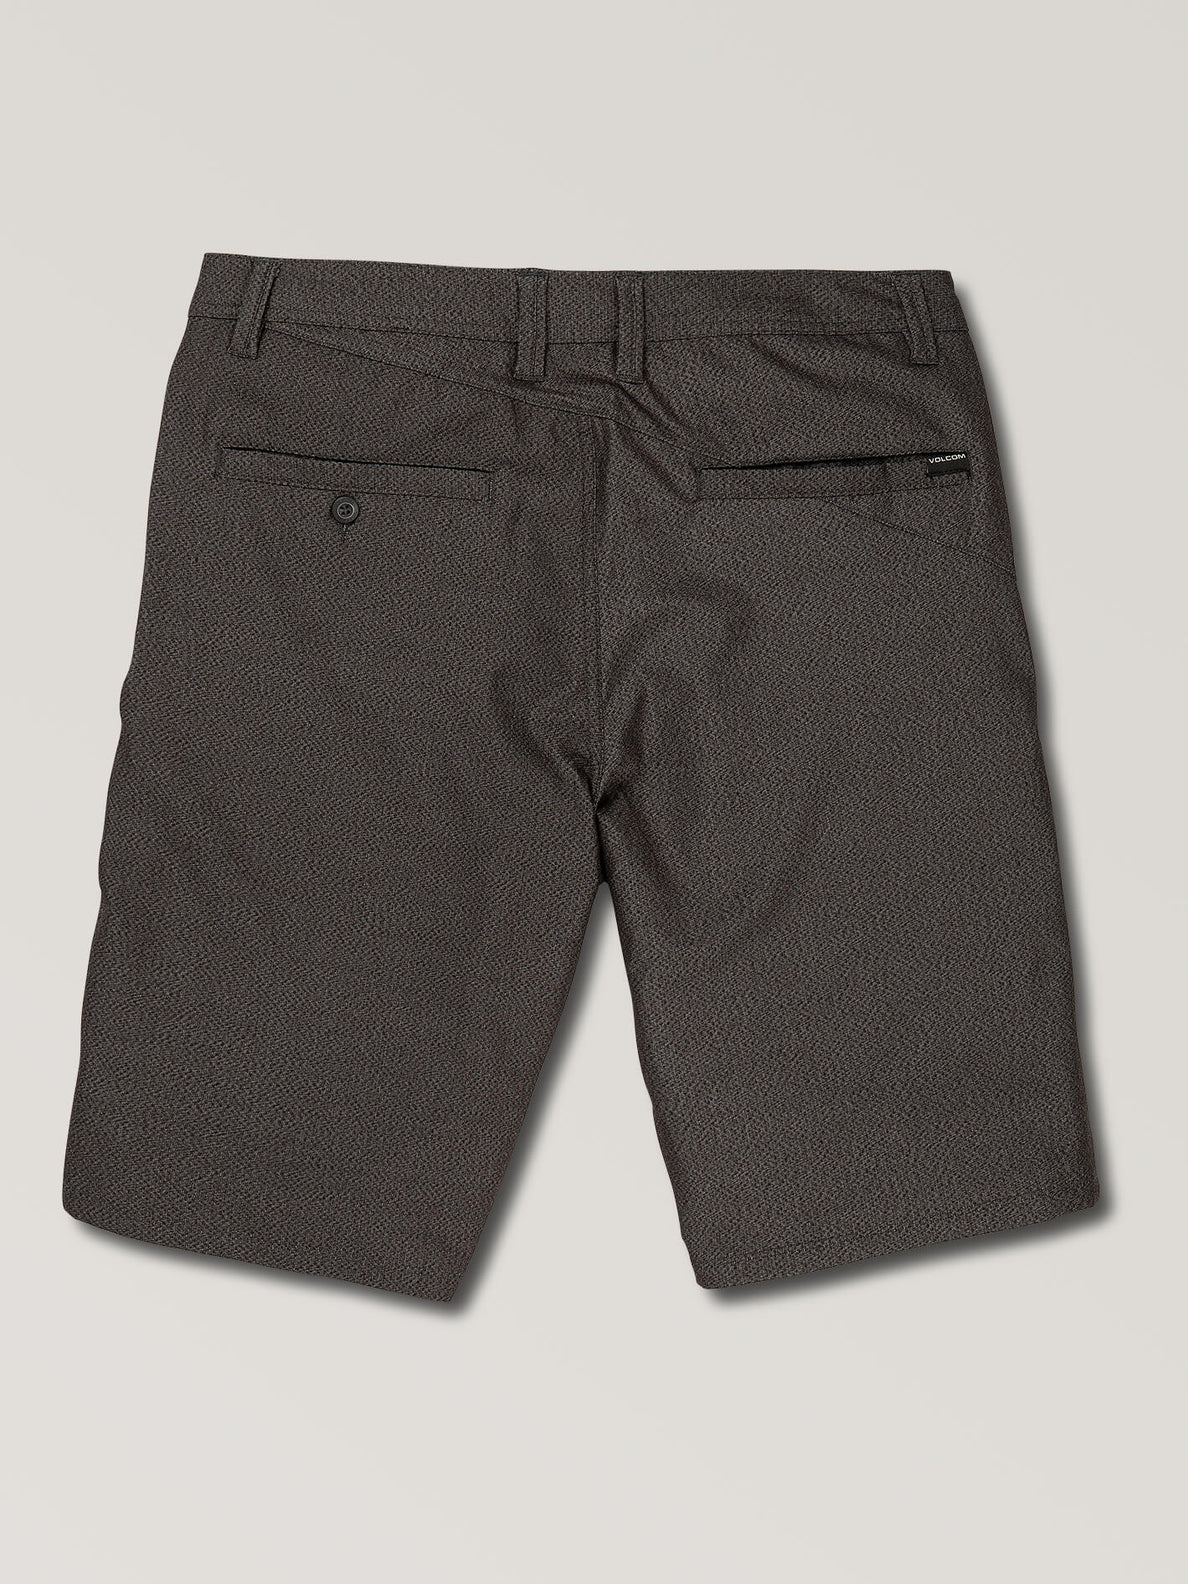 Frickin Surf N' Turf Dry Hybrid Shorts - Charcoal Heather (A3211901_CHH) [3]